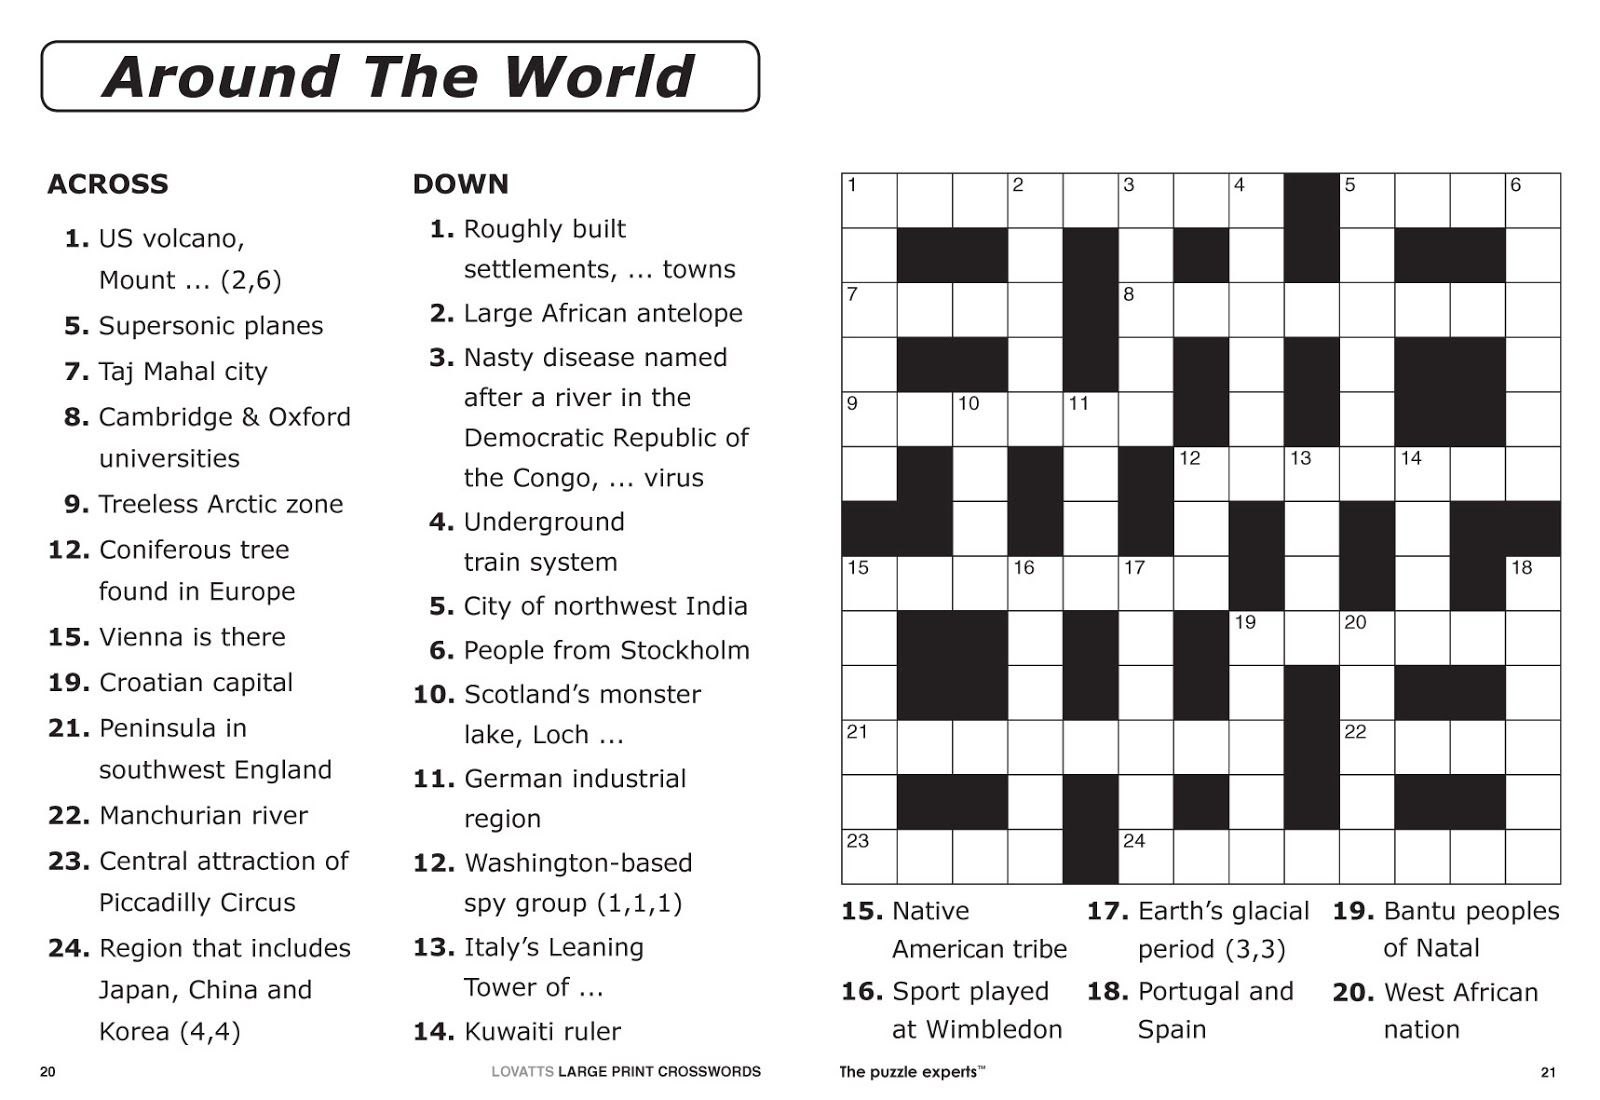 Free Printable Large Print Crossword Puzzles | M3U8 - Printable Crossword Puzzles Easy Pdf